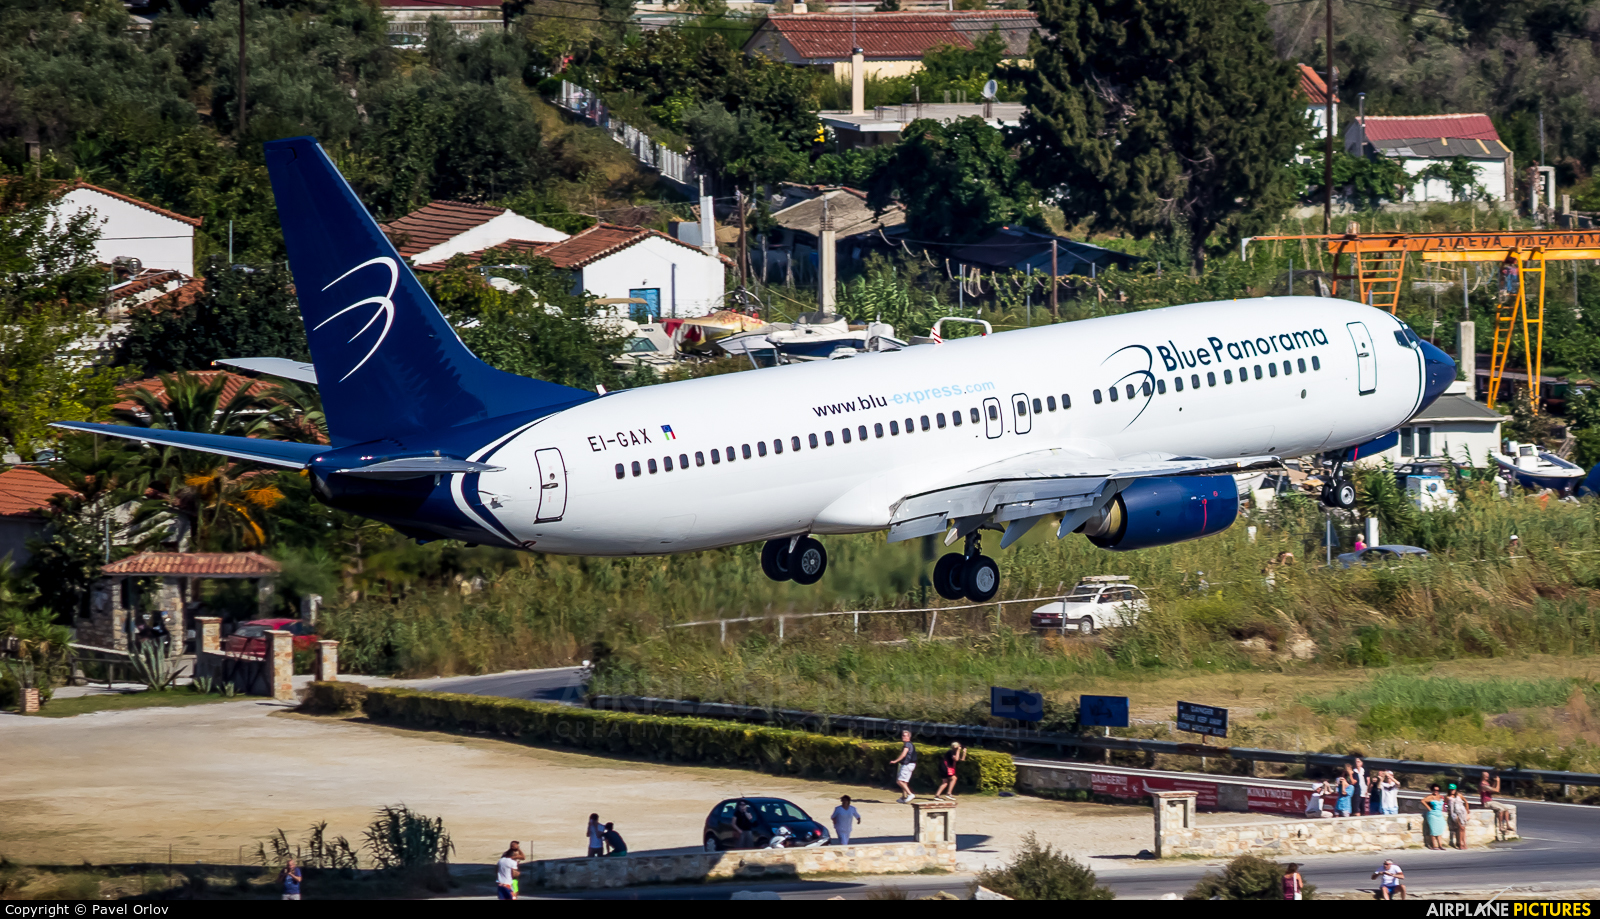 Blue Panorama Airlines EI-GAX aircraft at Skiathos